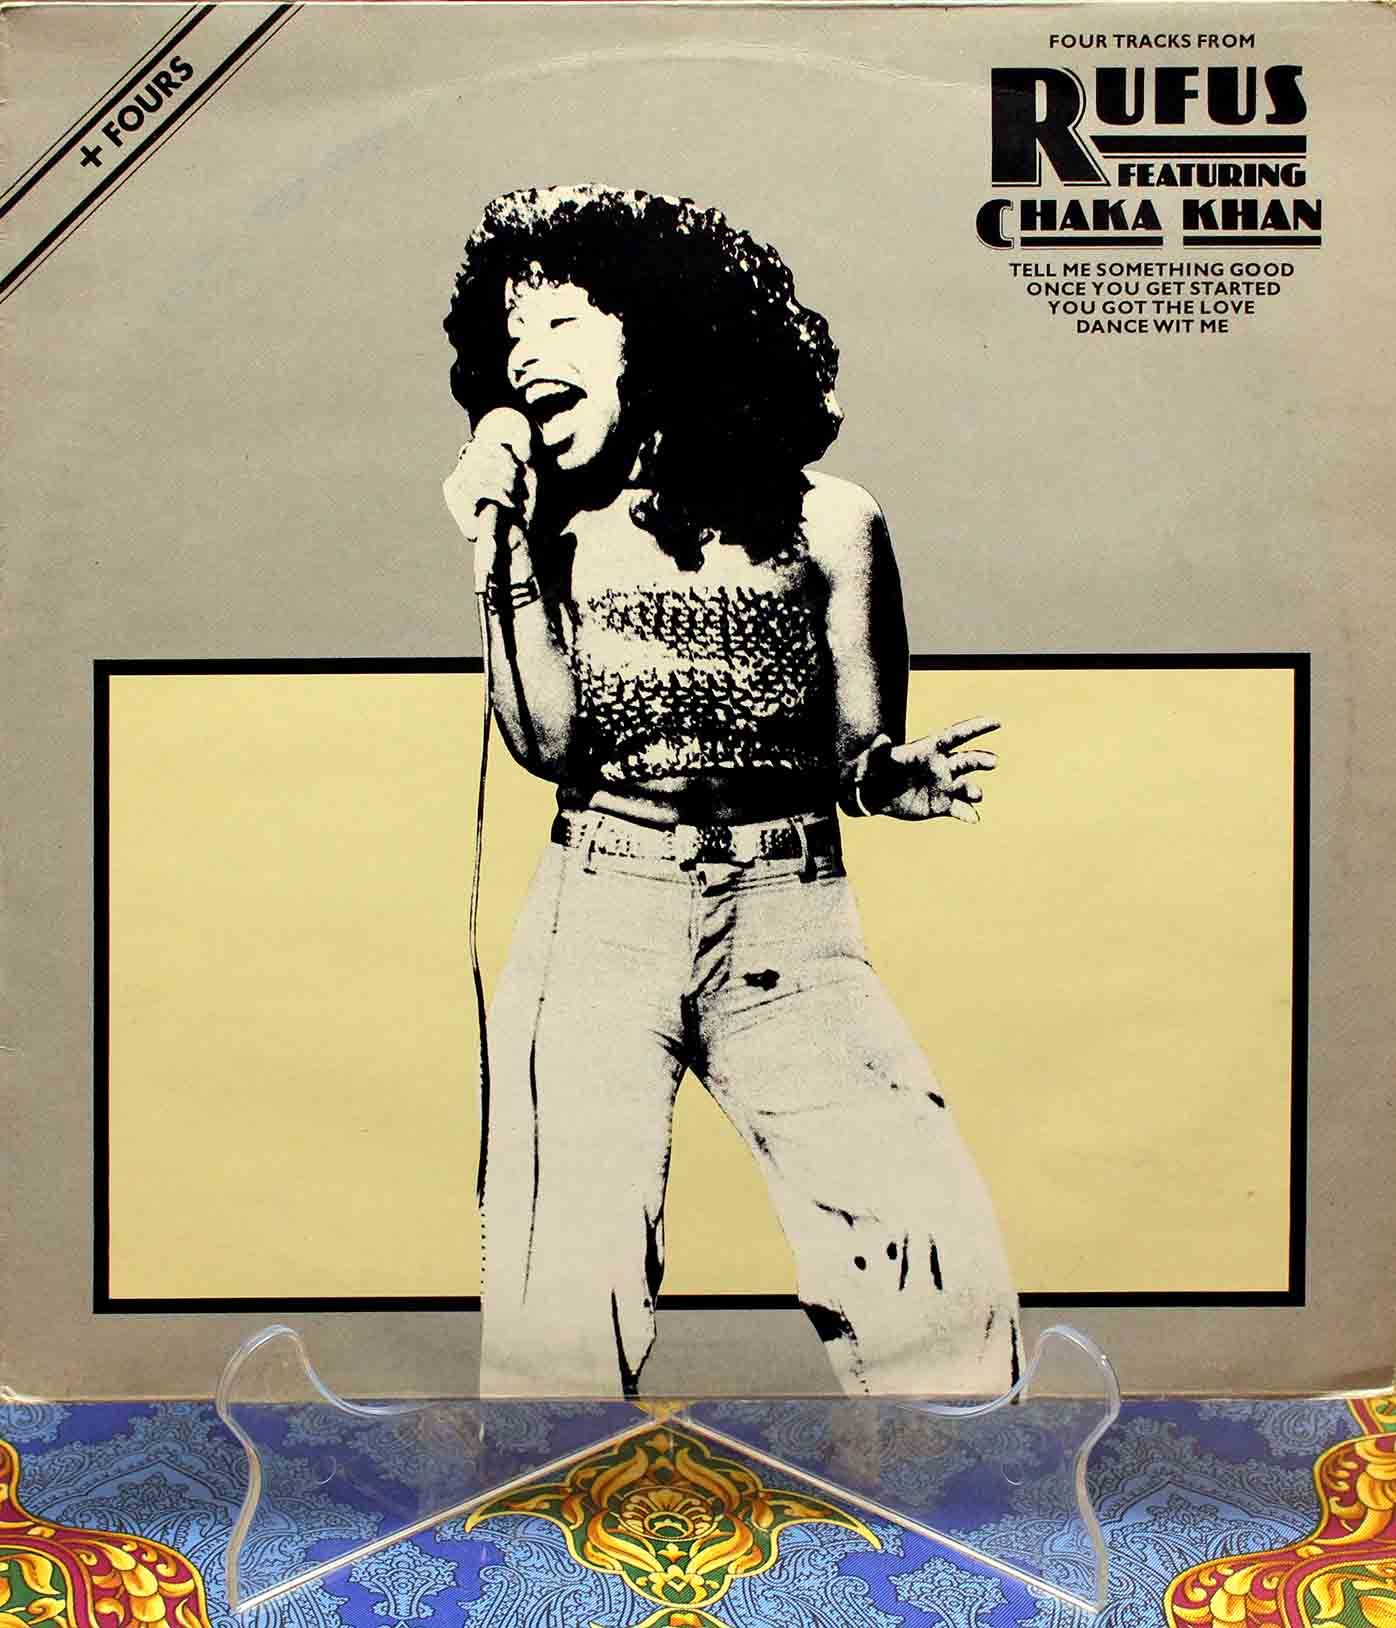 Rufus Featuring Chaka Khan ‎– Four Tracks 01